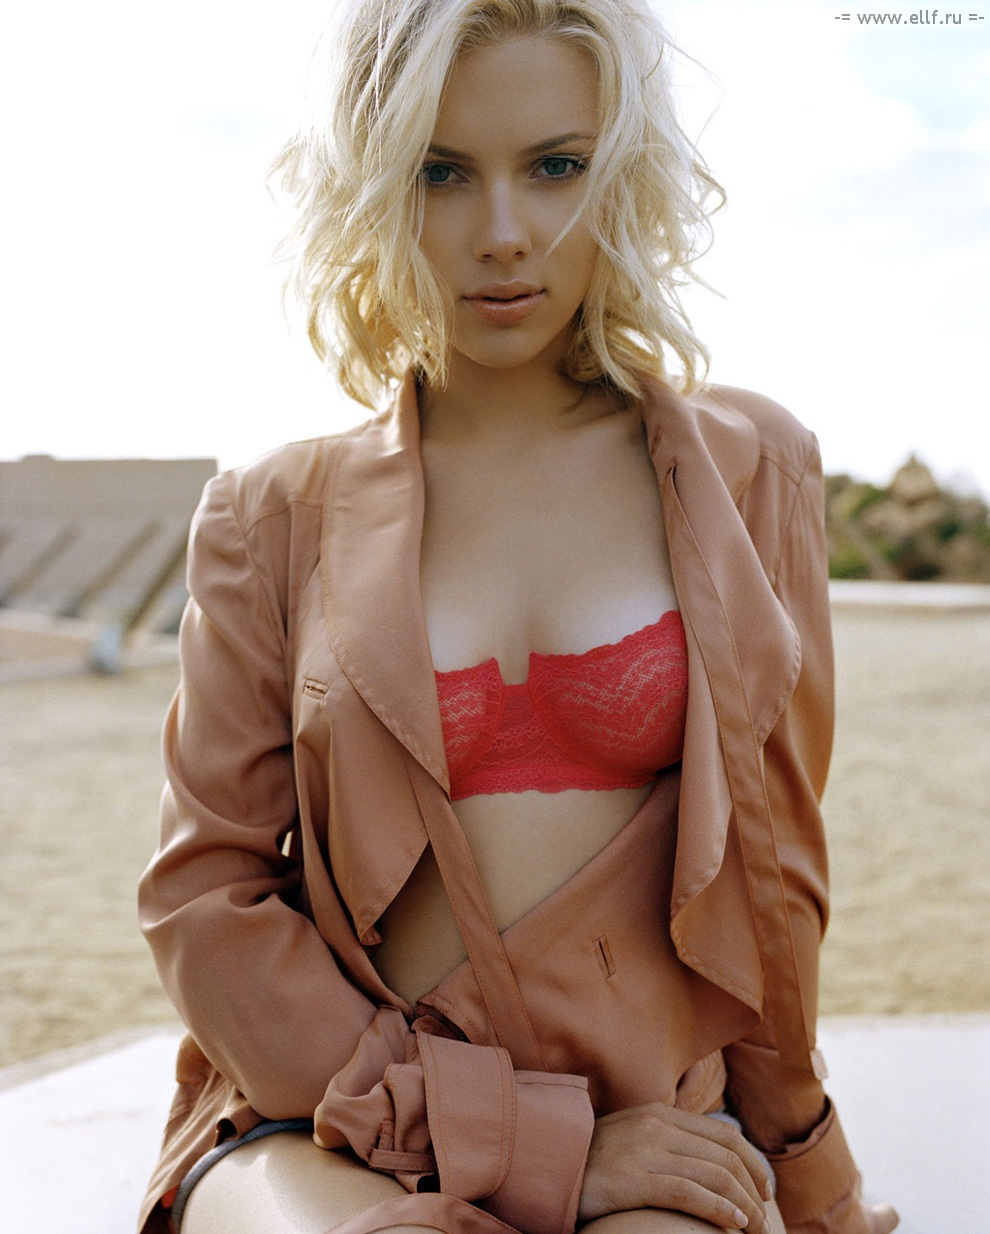 Hot And Romantic Actress Scarlett Johansson Hot Photos